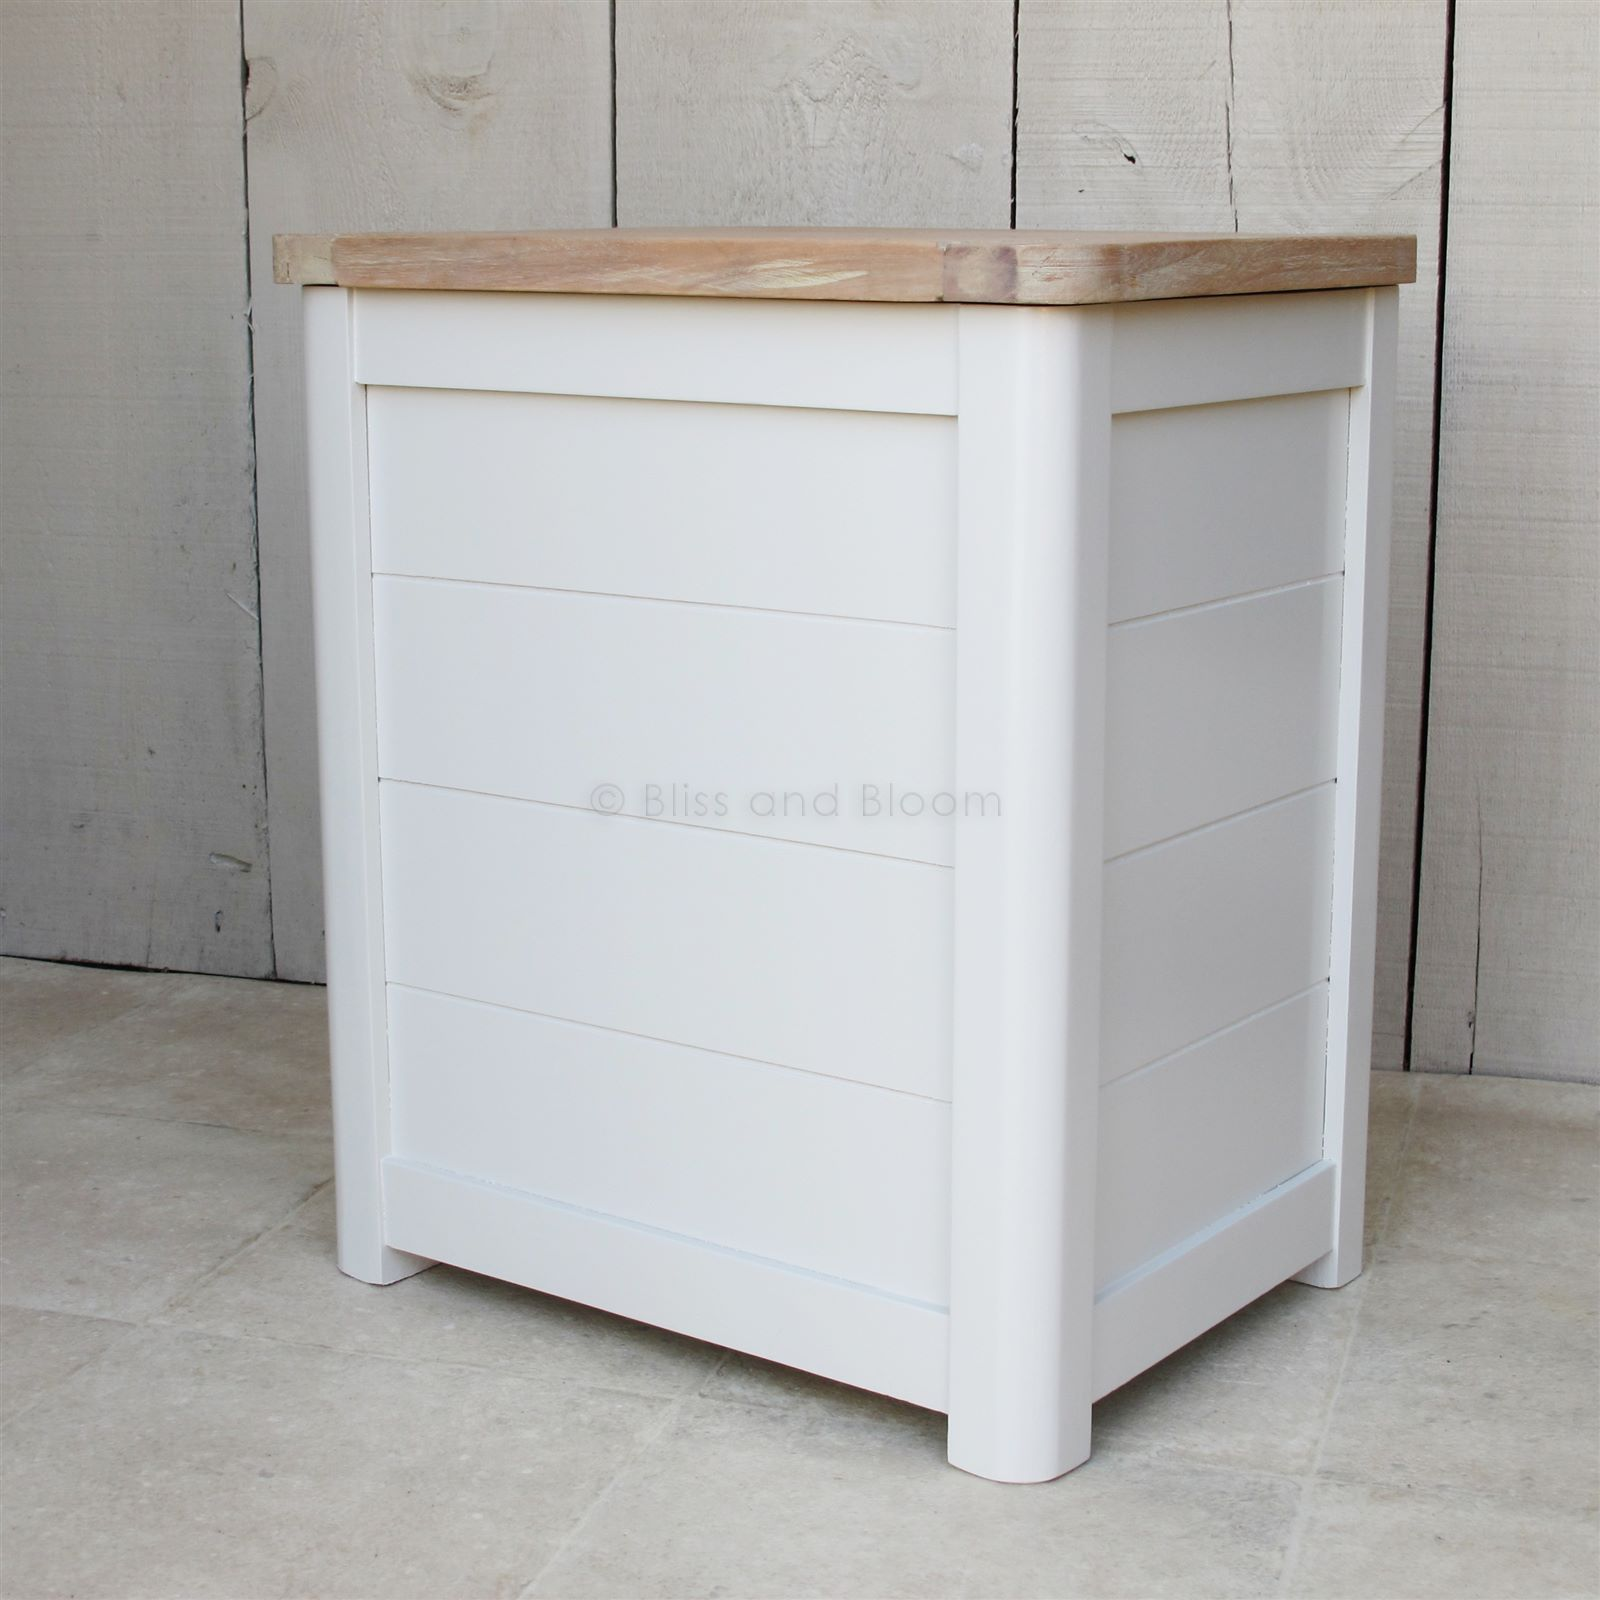 Wooden Laundry Bin Small Bliss And Bloom Ltd